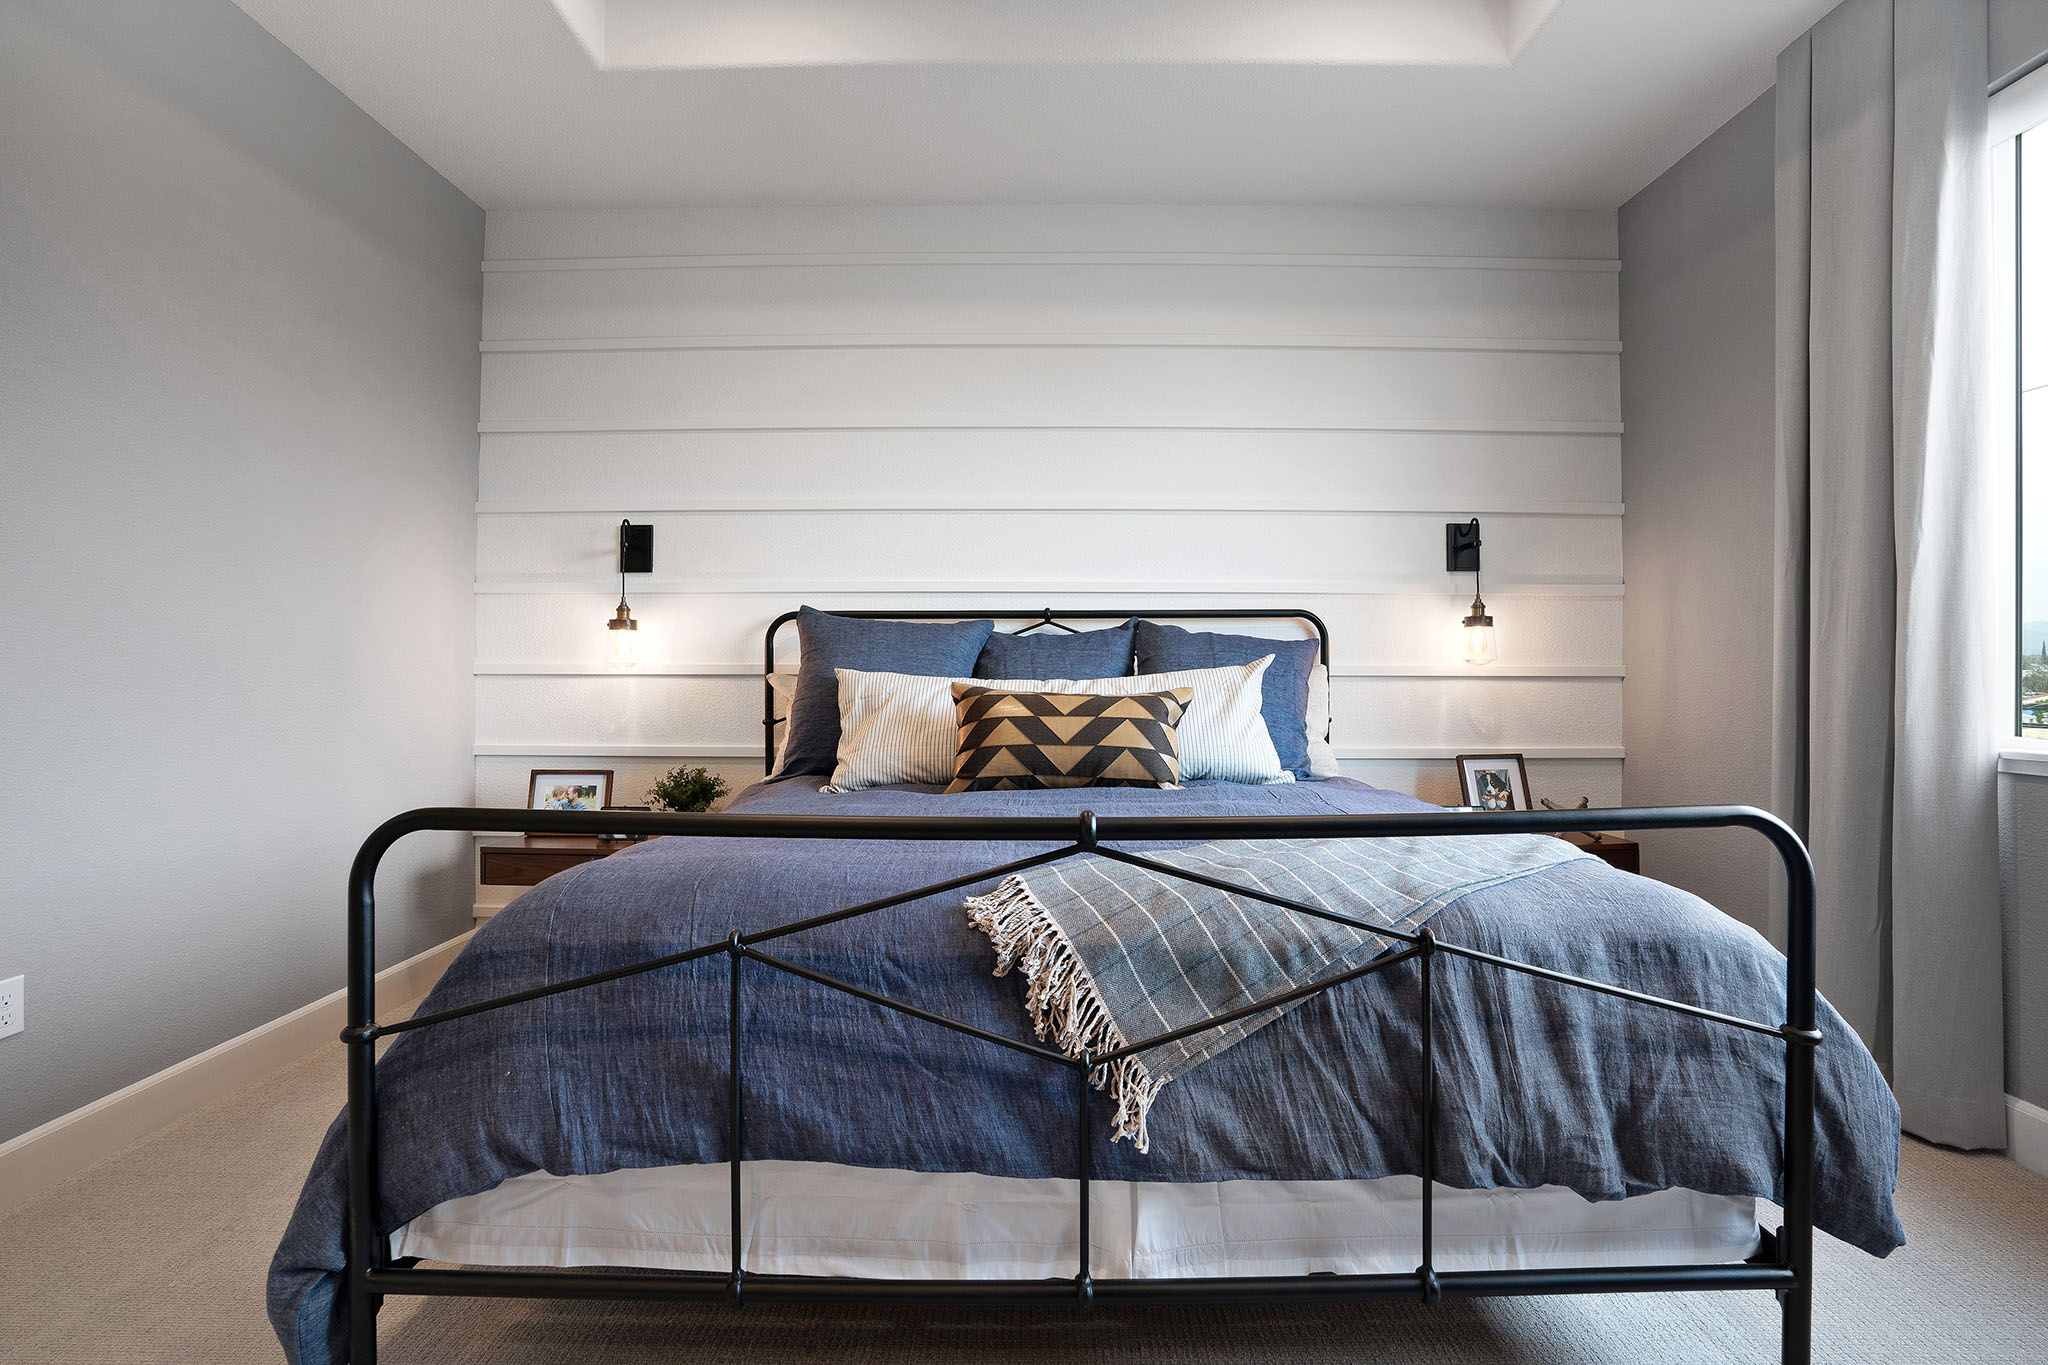 Bedroom featured in the Cristata By Discovery Homes in Vallejo-Napa, CA